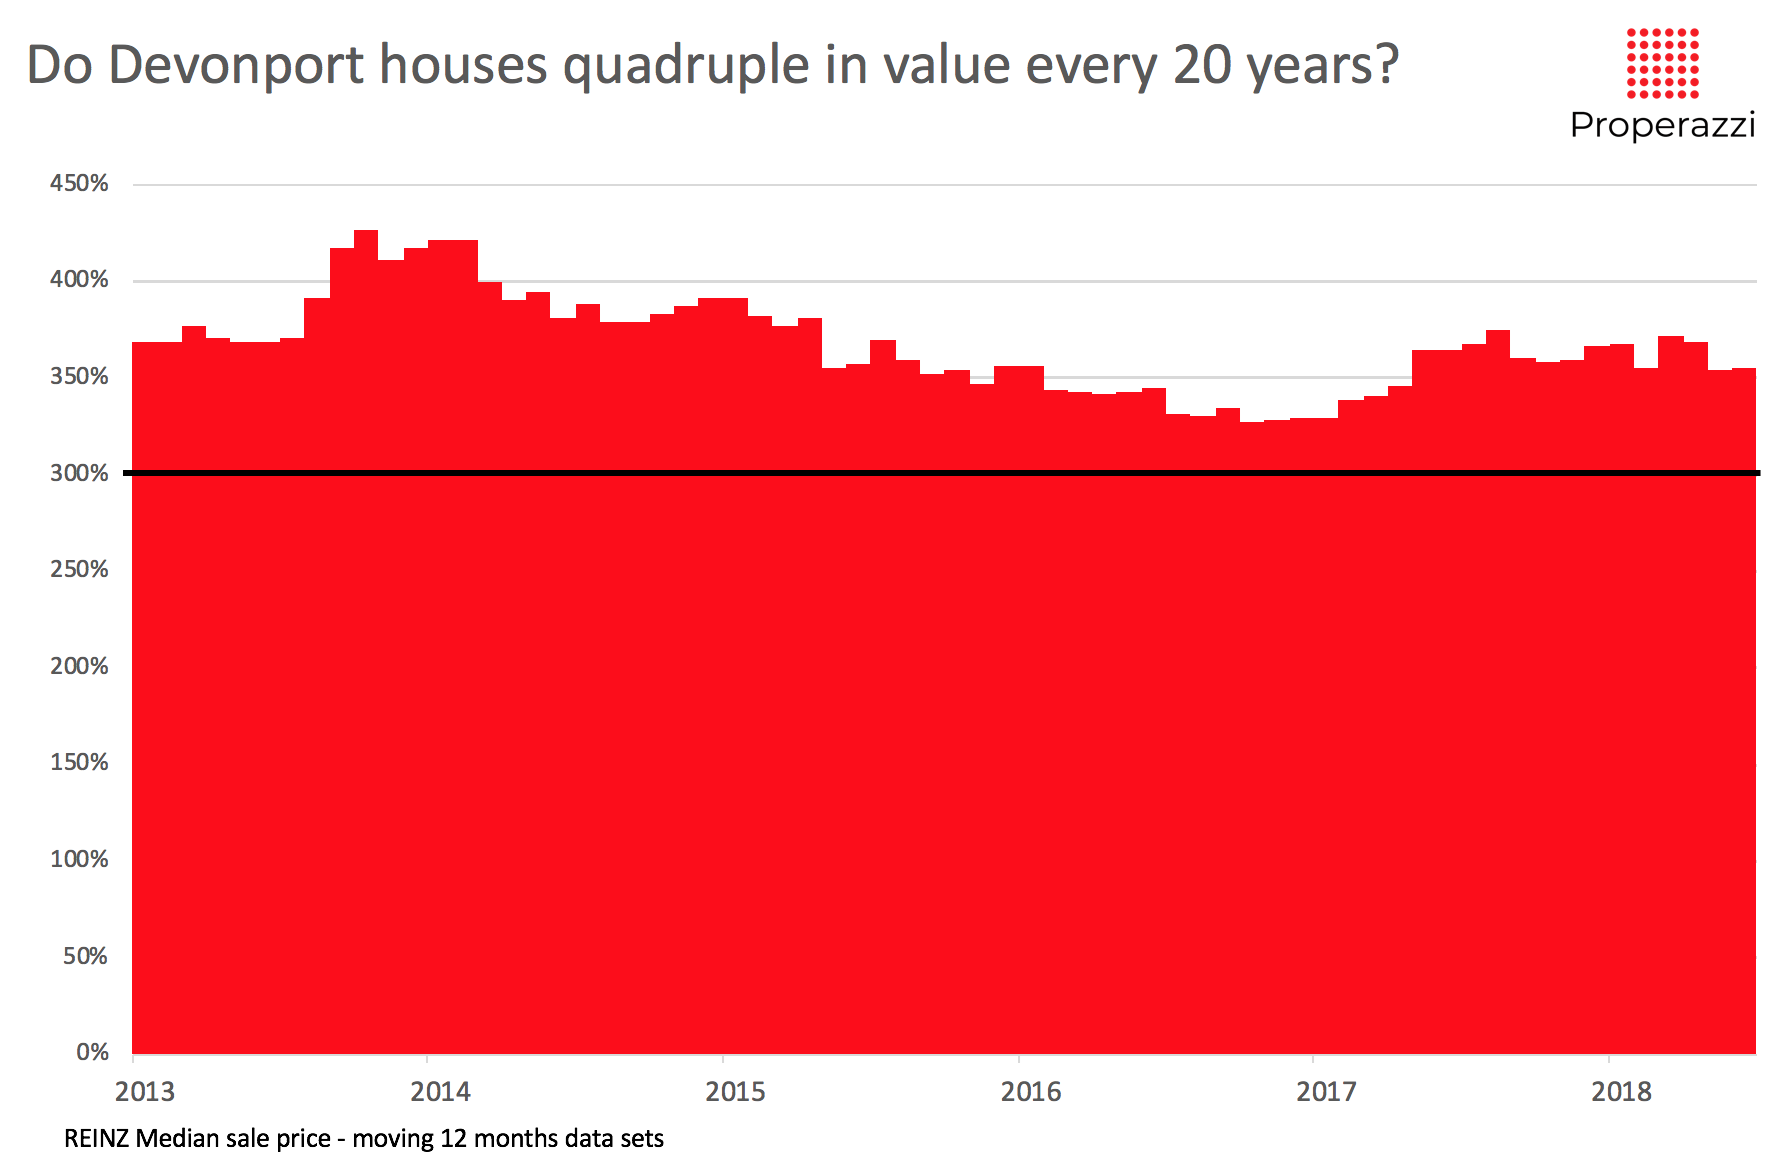 Annual_Devonport_Penninsula_Houses_92_to_Jun_2018.png